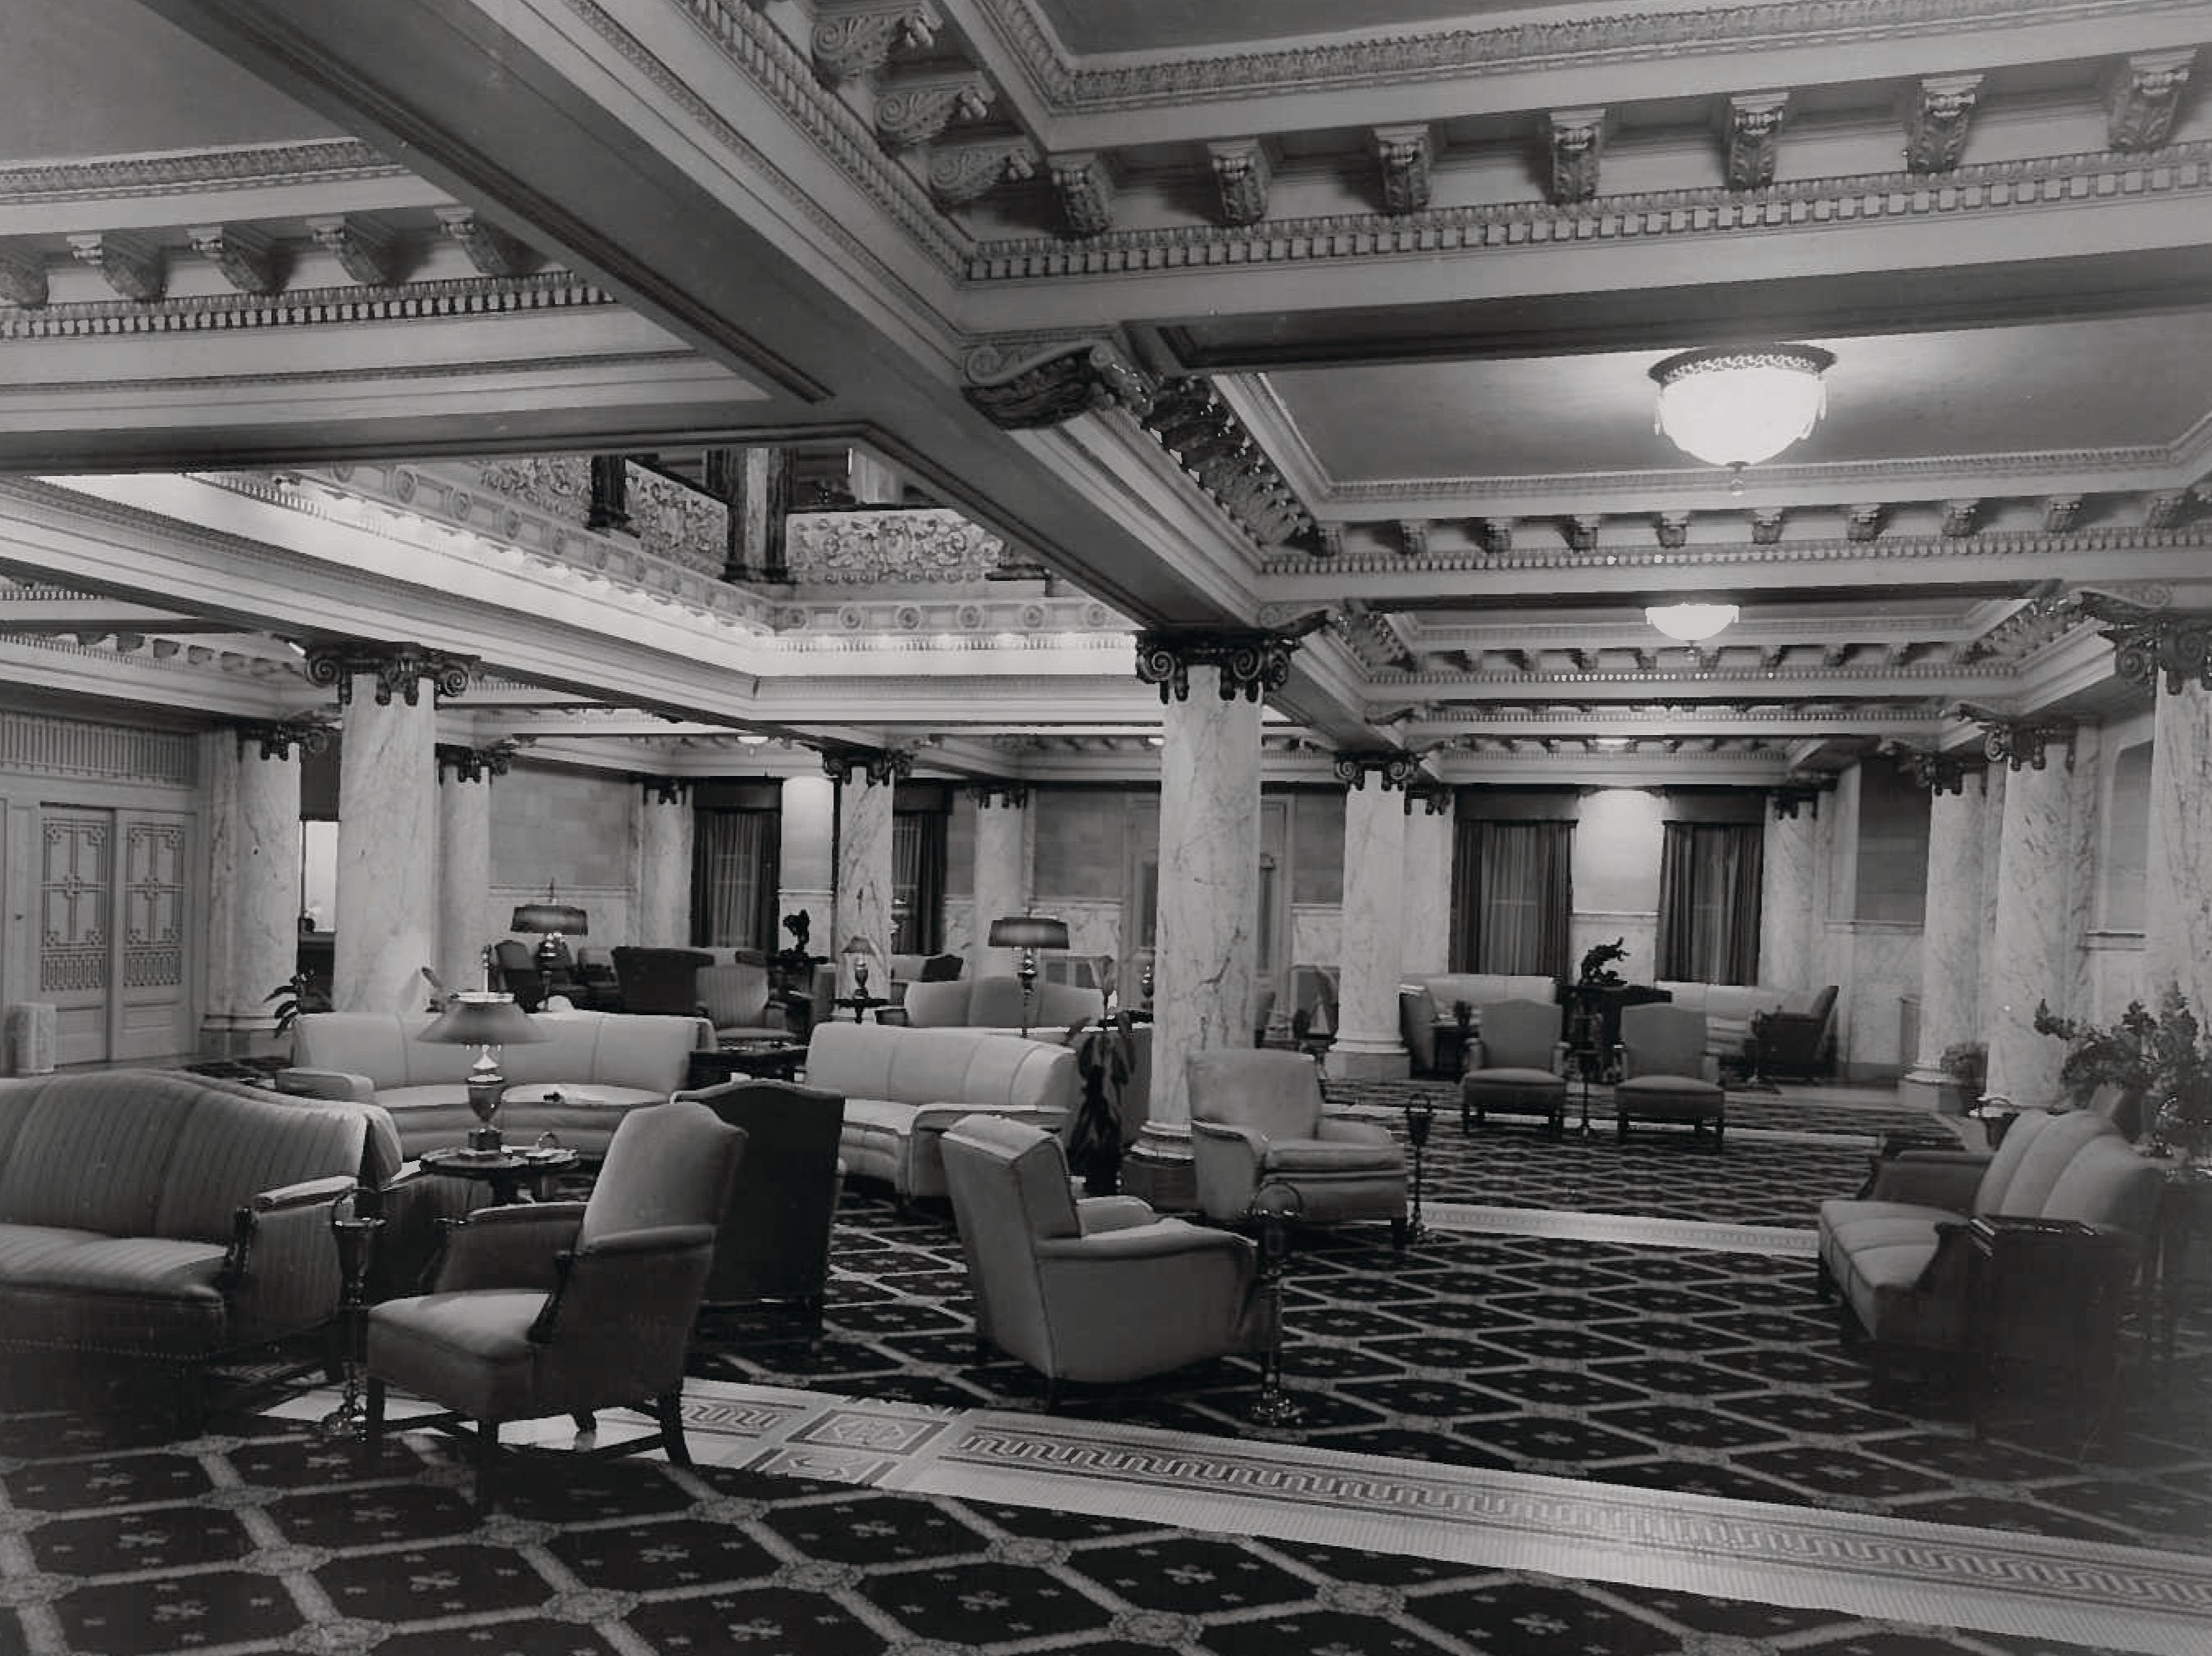 Guest lobby of the French Lick Springs Hotel (unknown date)